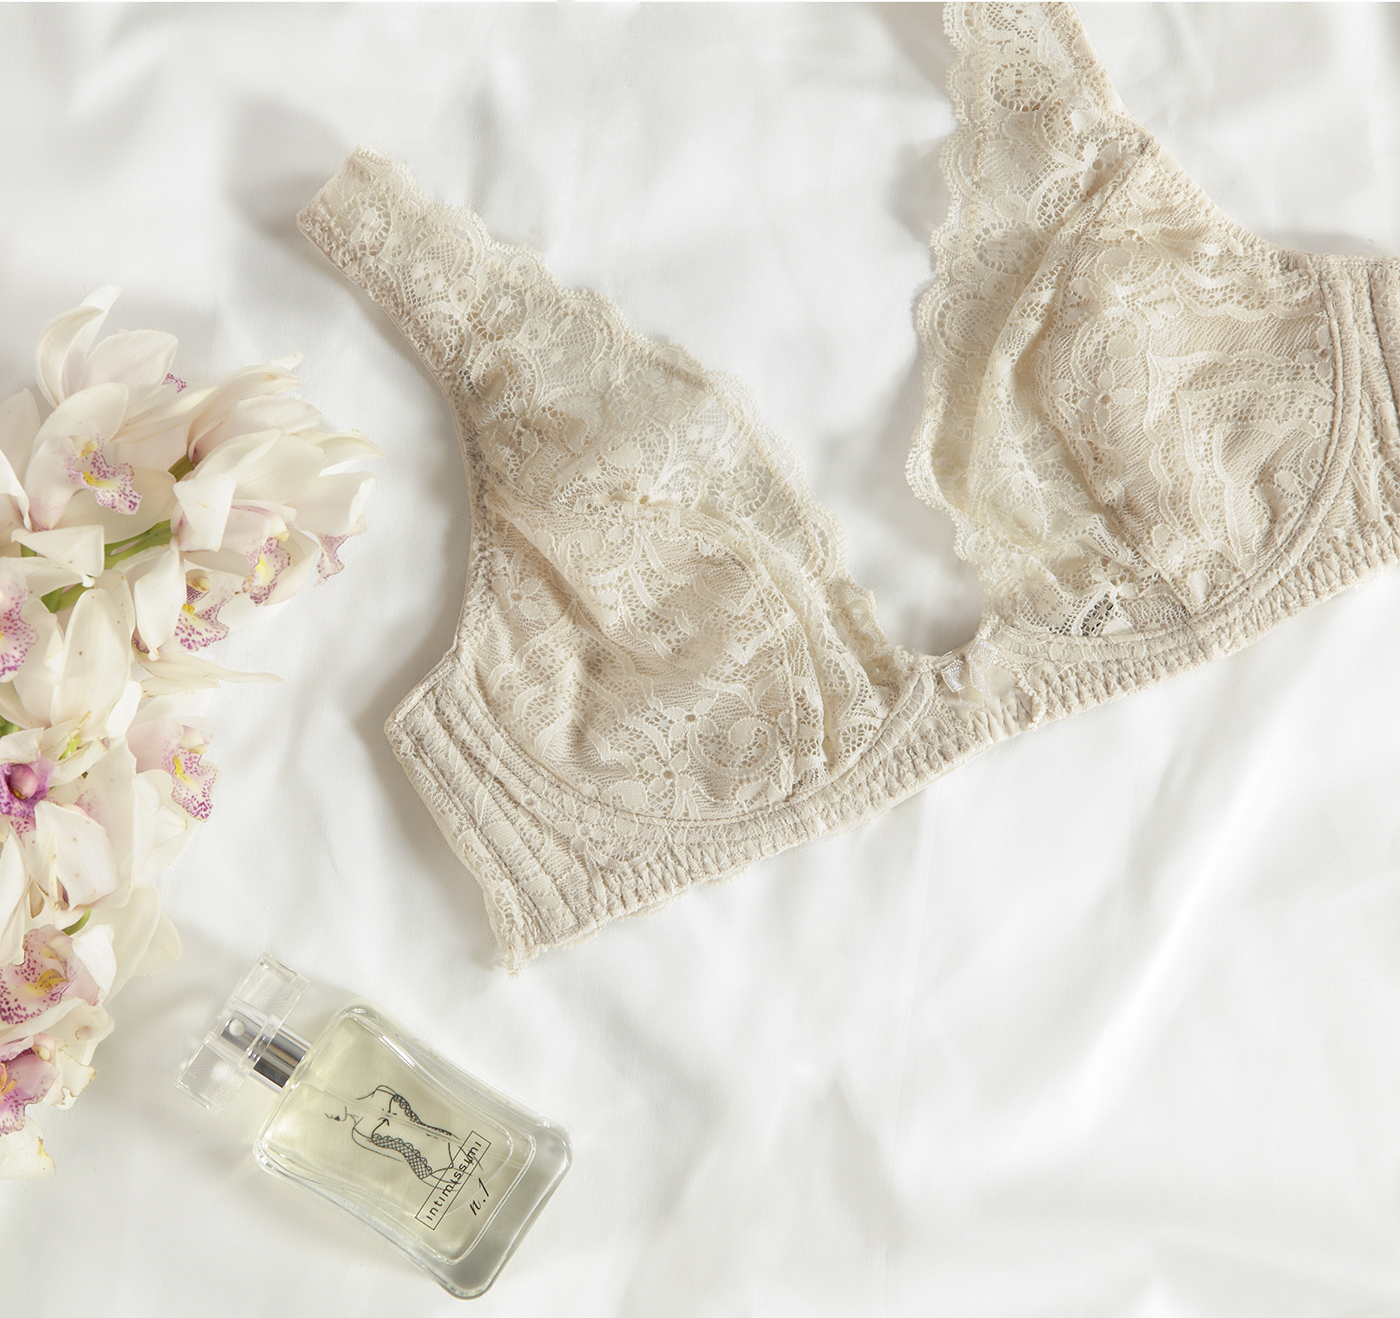 Your Body Will LOVE This Italian Lingerie From Intimissimi